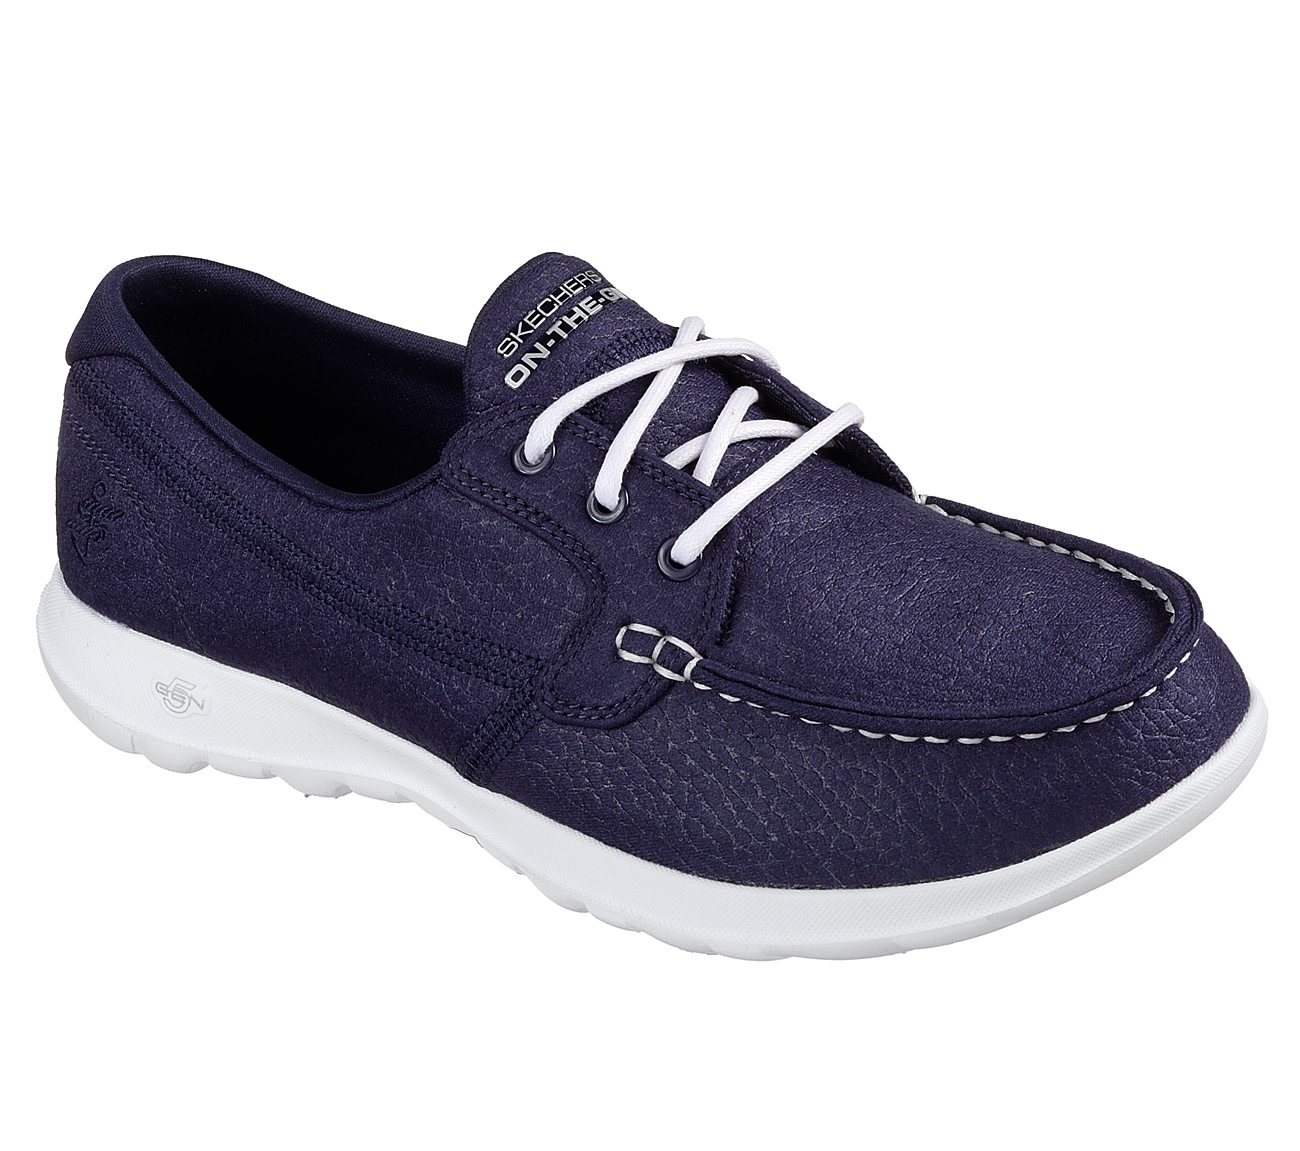 Skechers GOwalk Lite - Eclipse